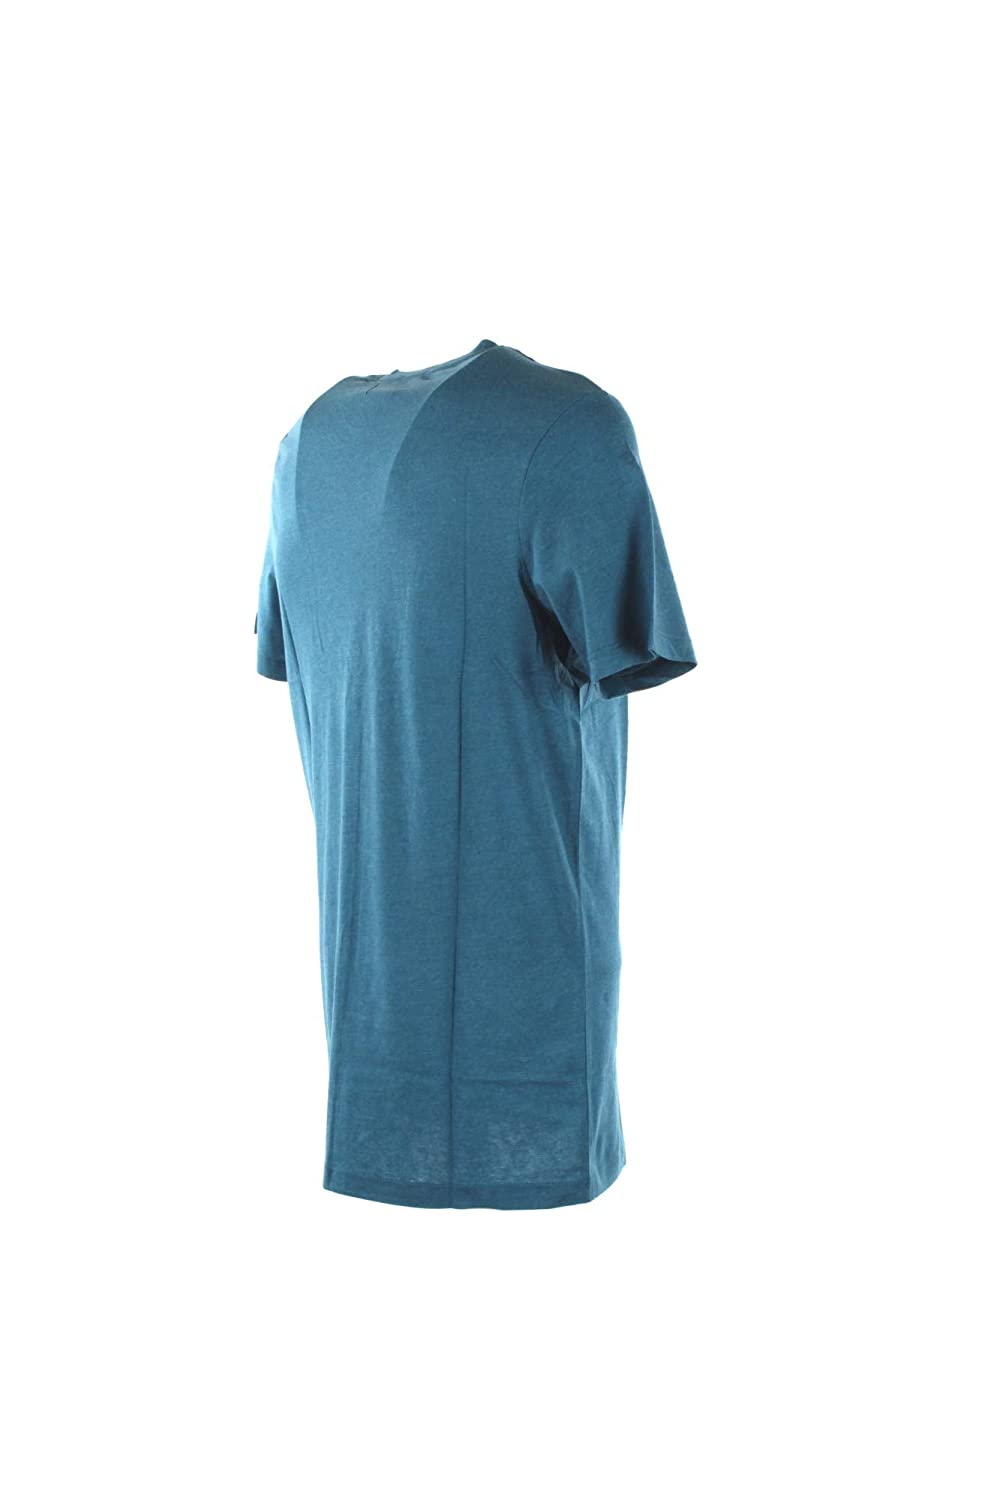 Jack /& Jones T-Shirt Uomo XL Petrolio 12148135//jcobigger Primavera Estate 2019